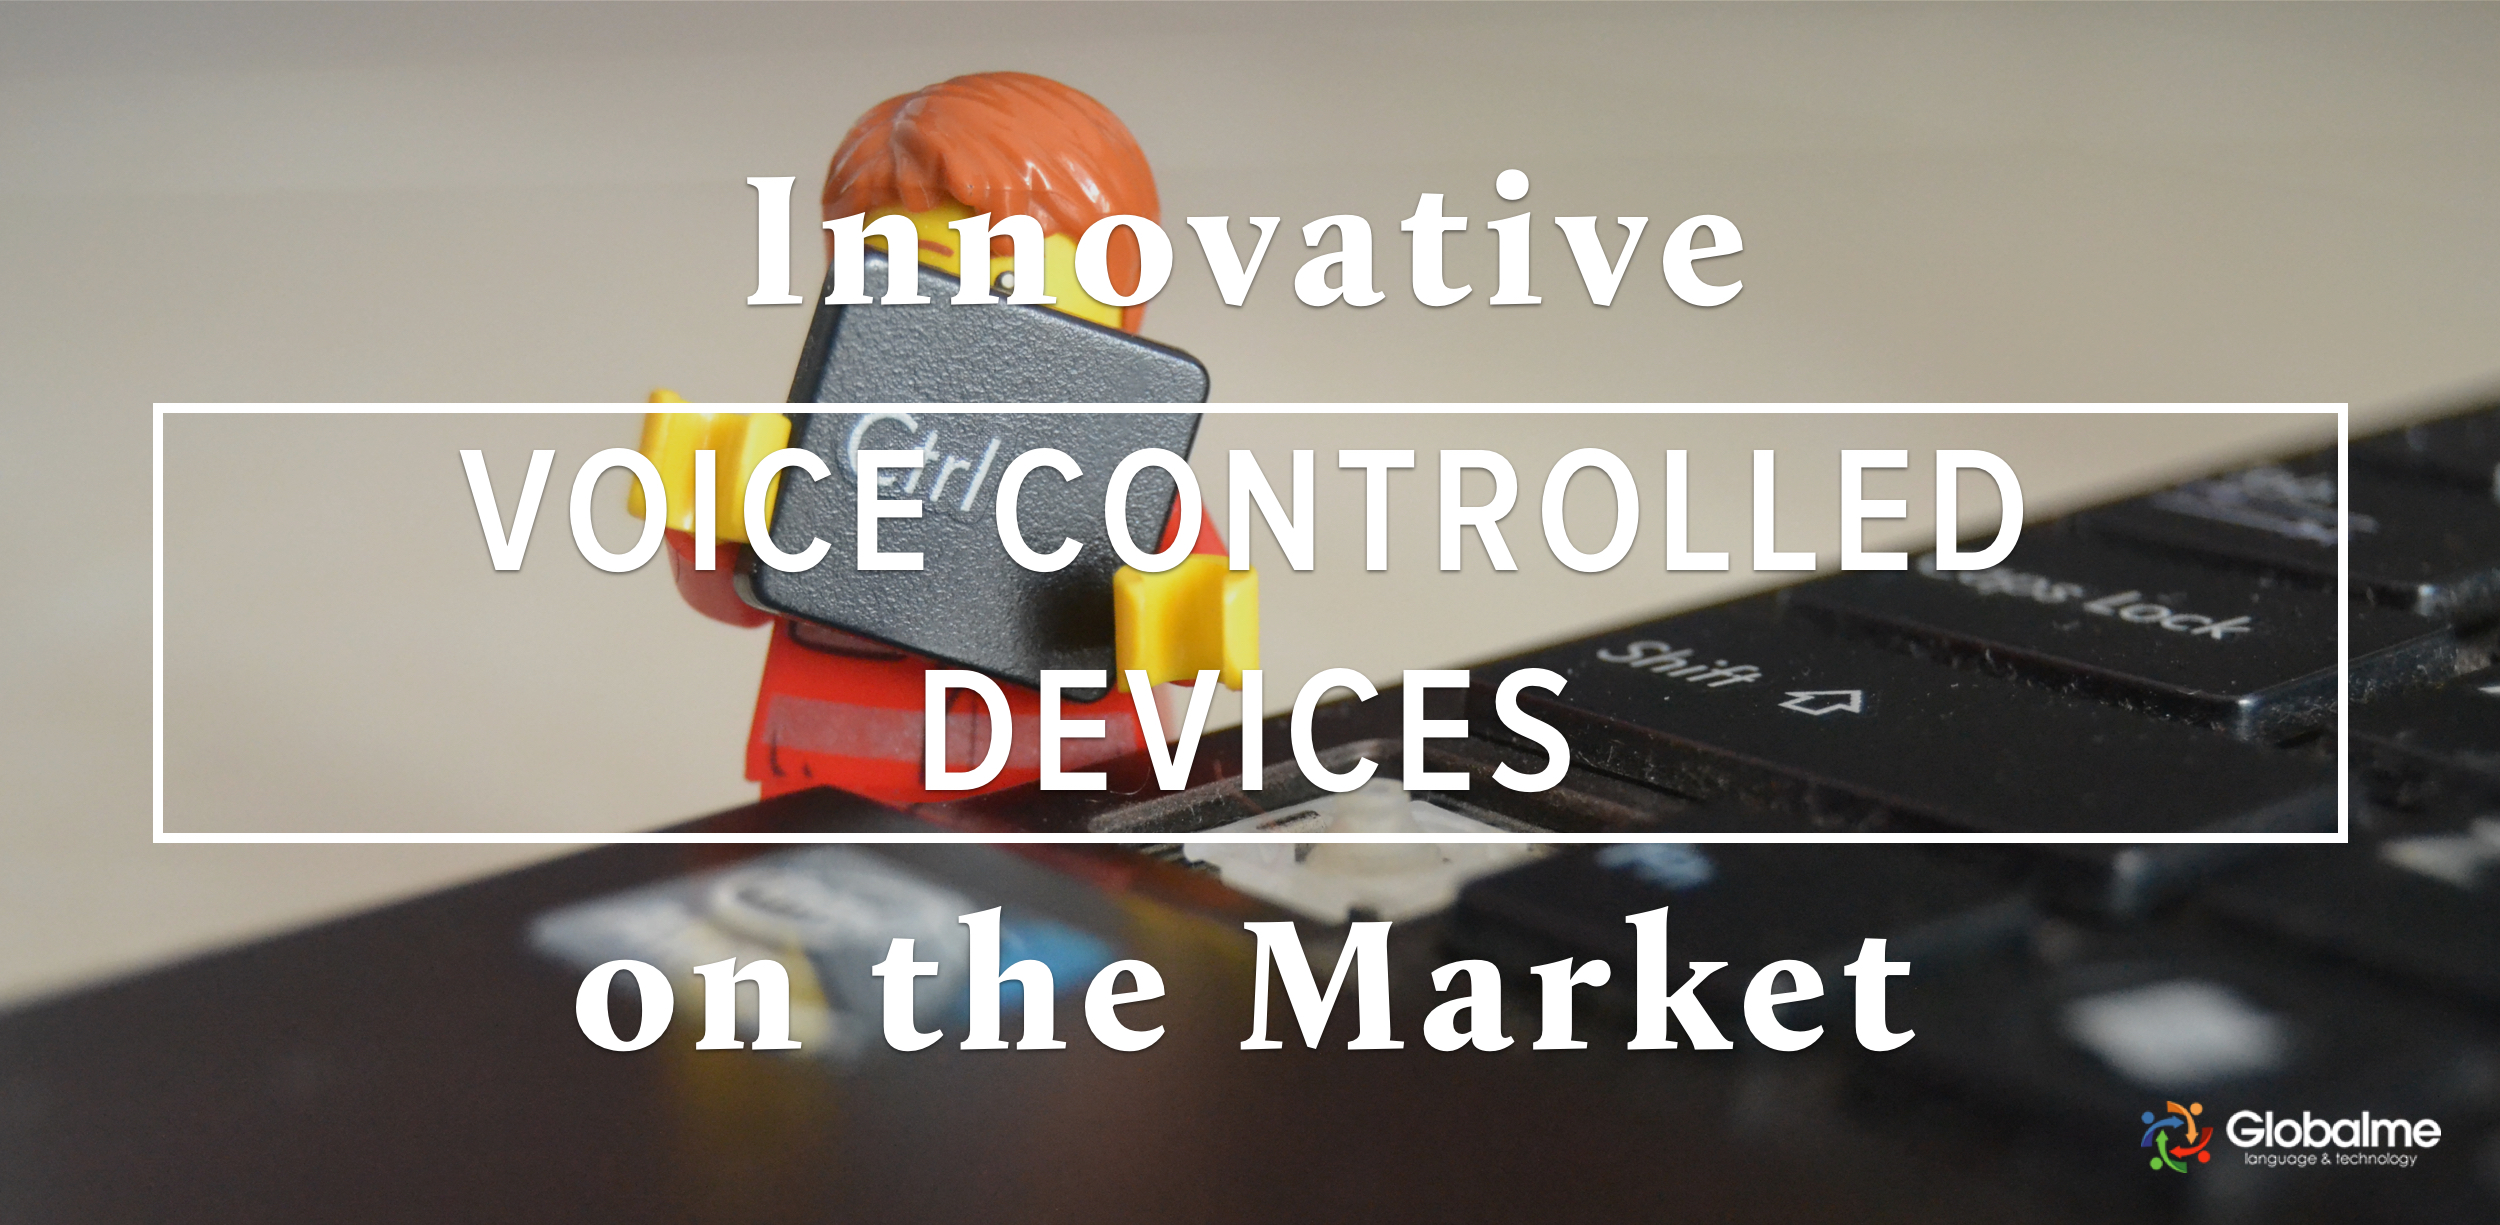 Innovative Voice Controlled Devices on the Market Today | Globalme